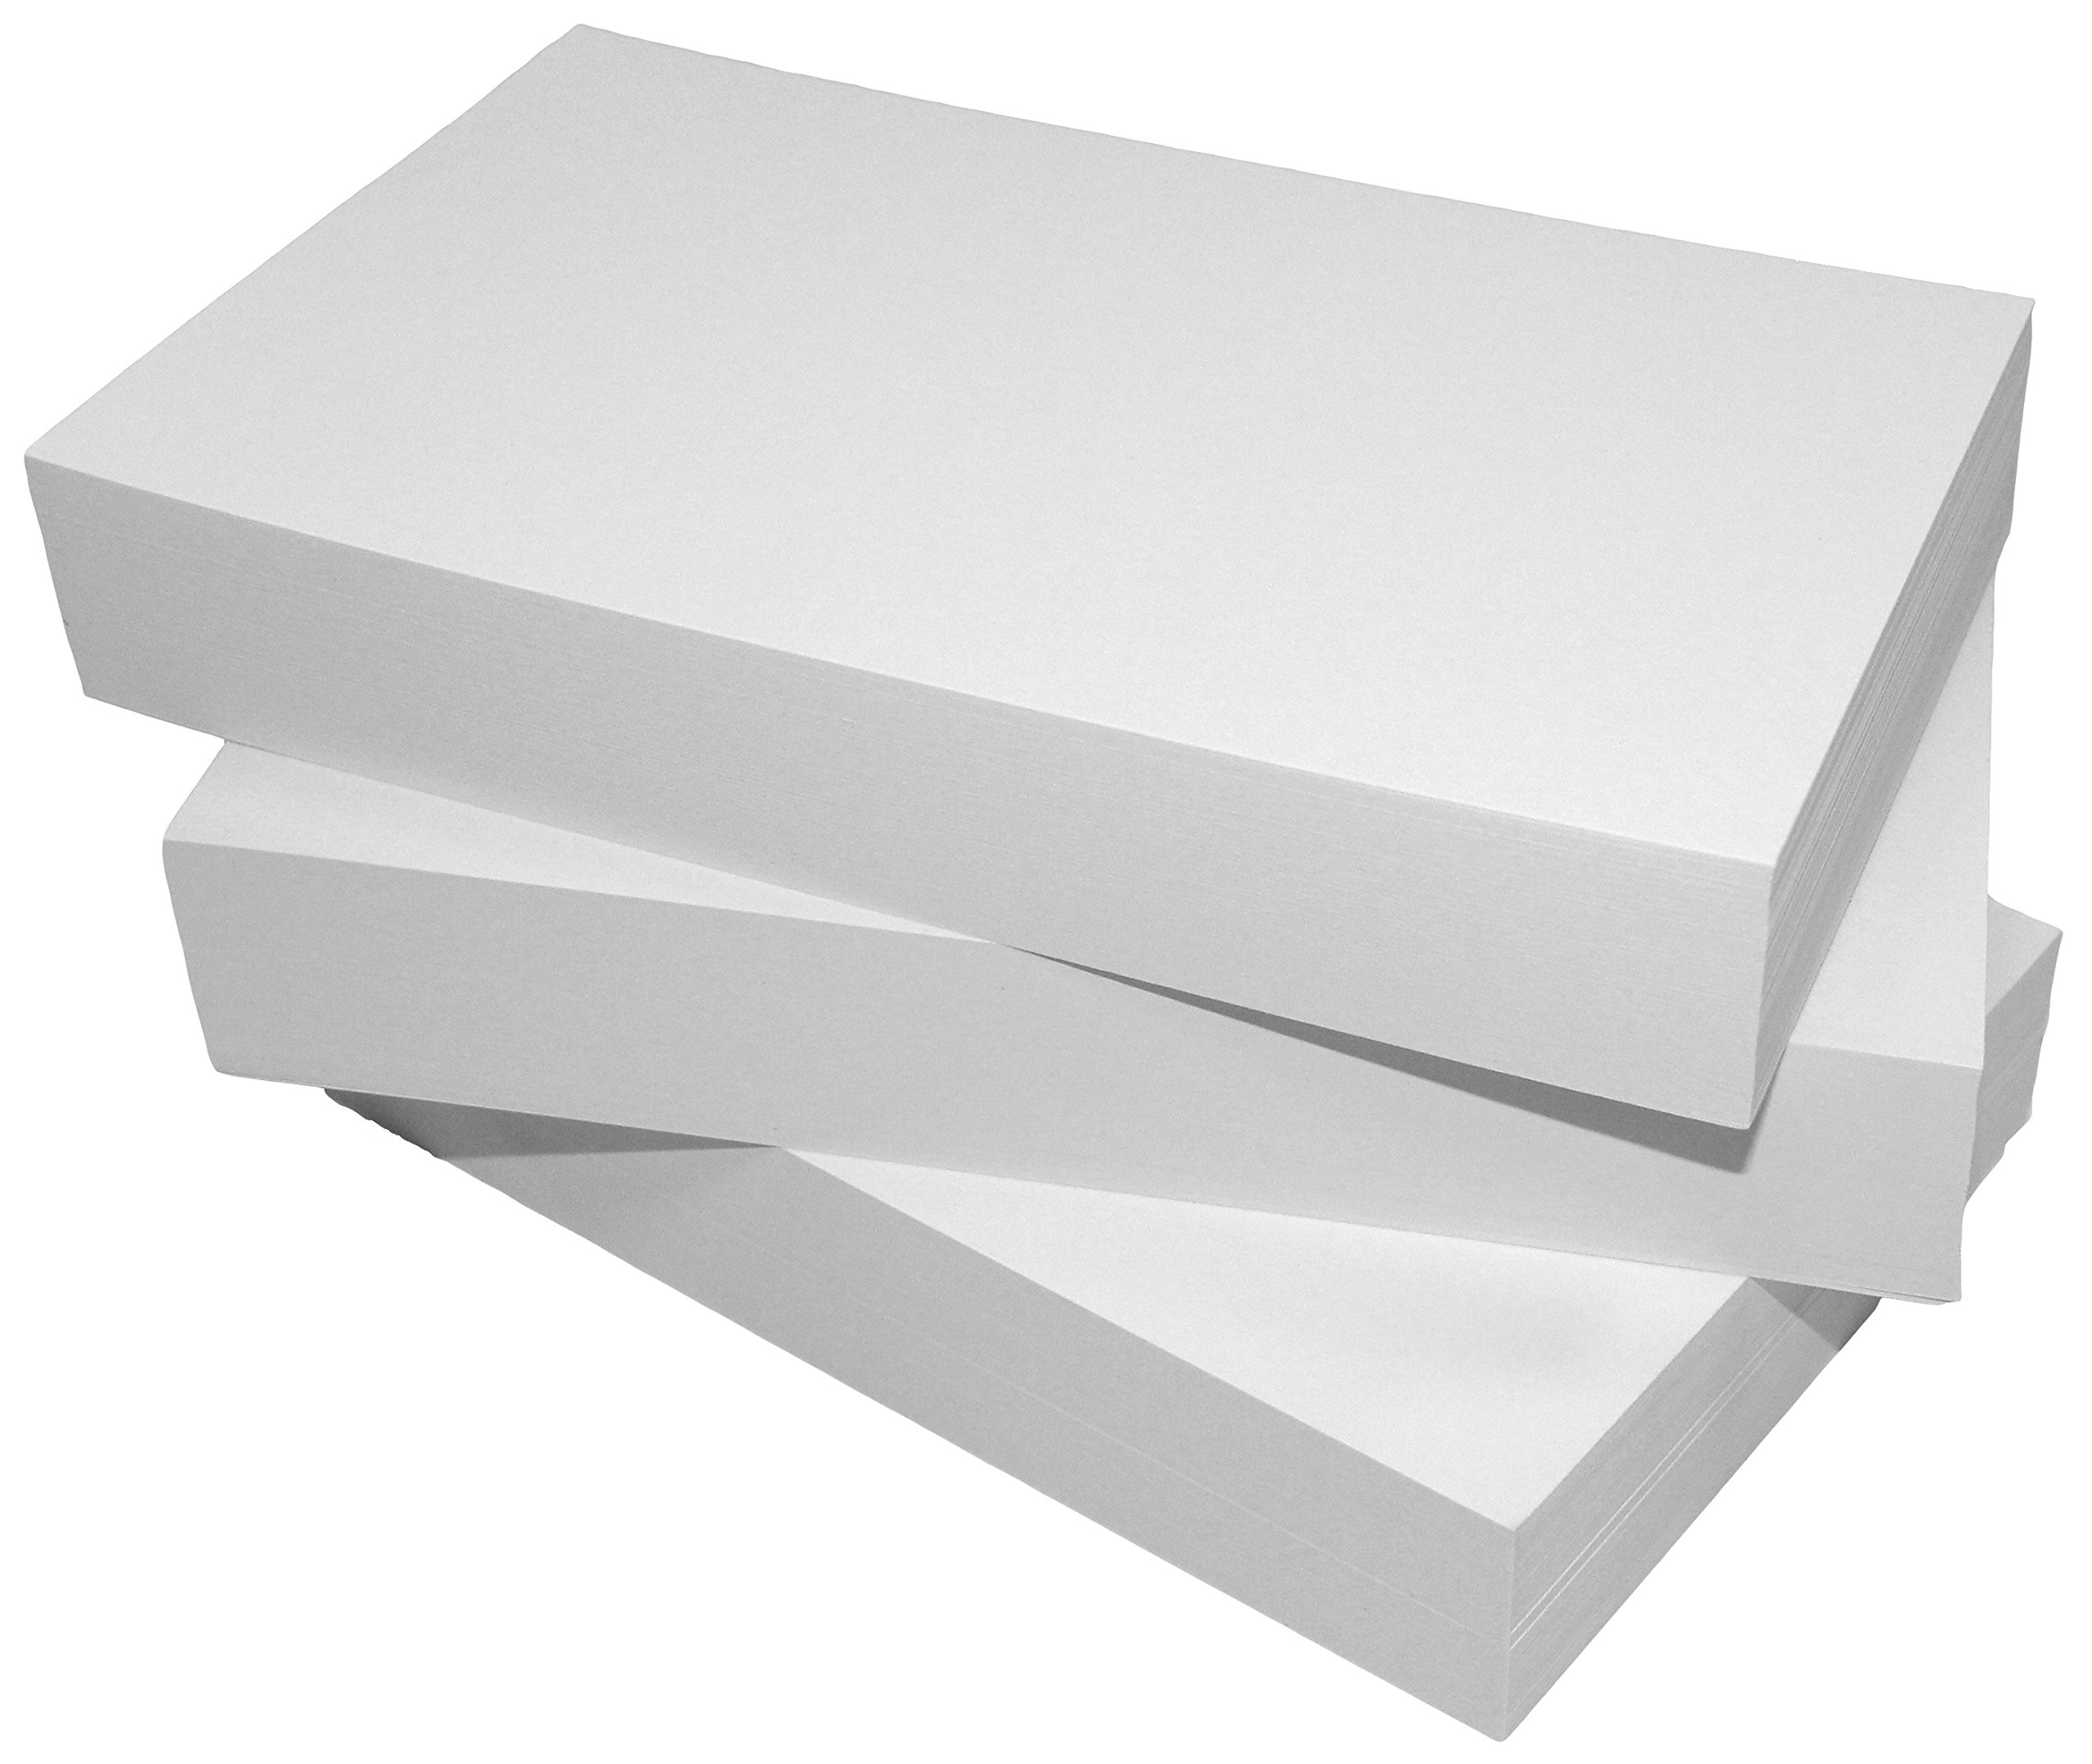 Debra Dale Designs - Blank Both Sides - Unruled 5'' x 8'' Index Cards - White - 300 Cards - 3 Packages of 100 - Extra Heavy 140# Index Card Stock - 253 GSM - .0118 Thick